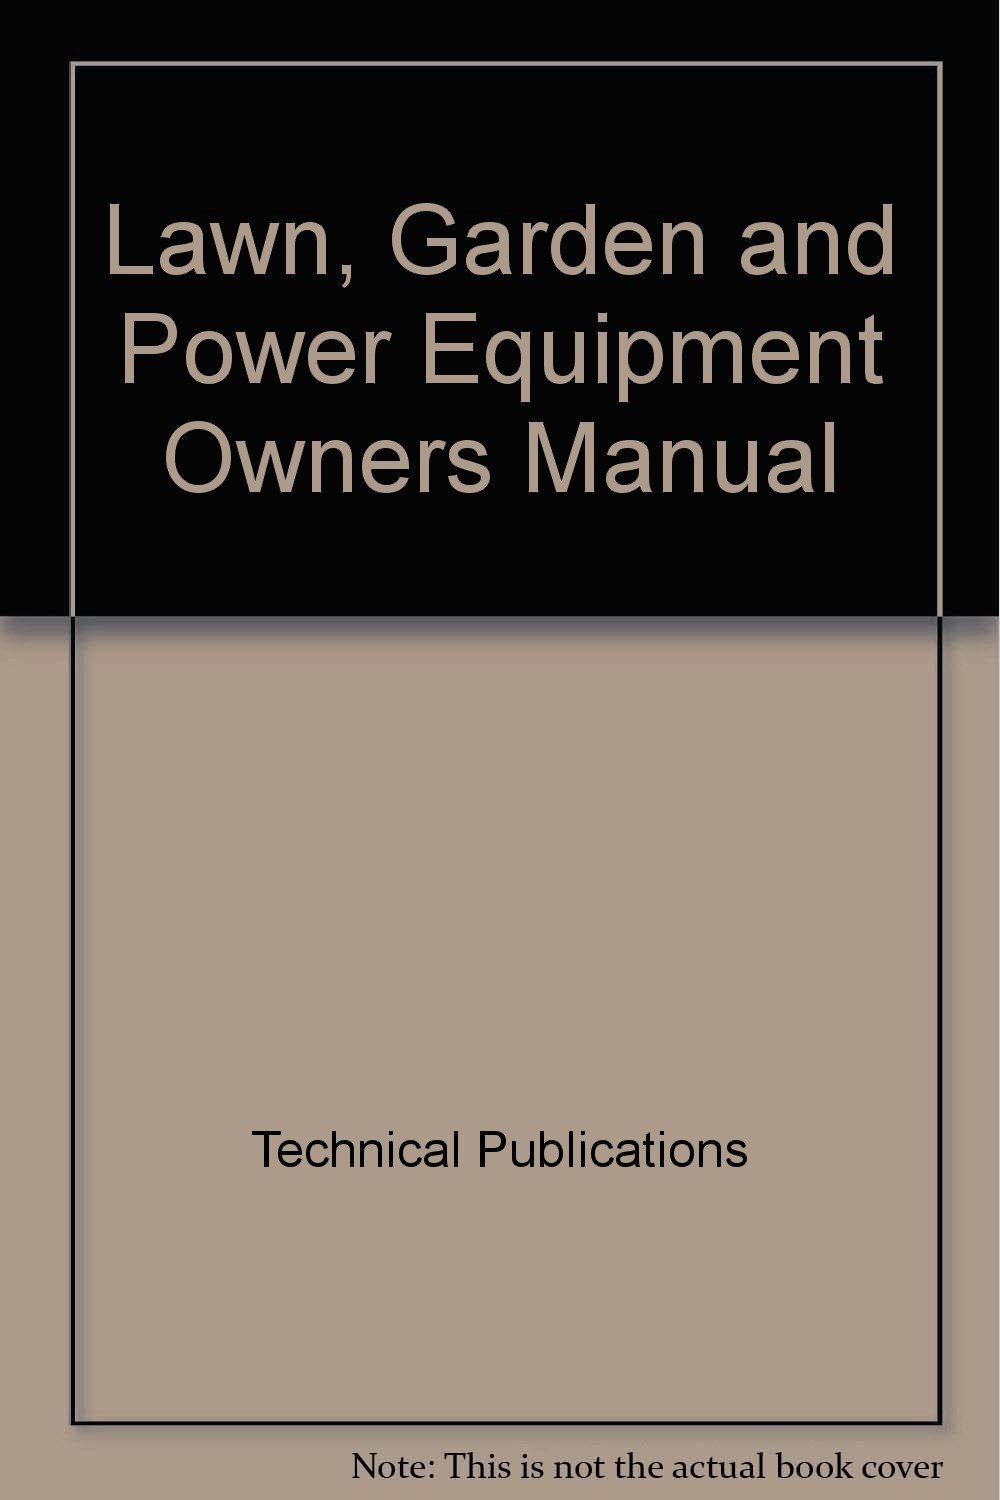 Lawn, Garden and Power Equipment Owners Manual